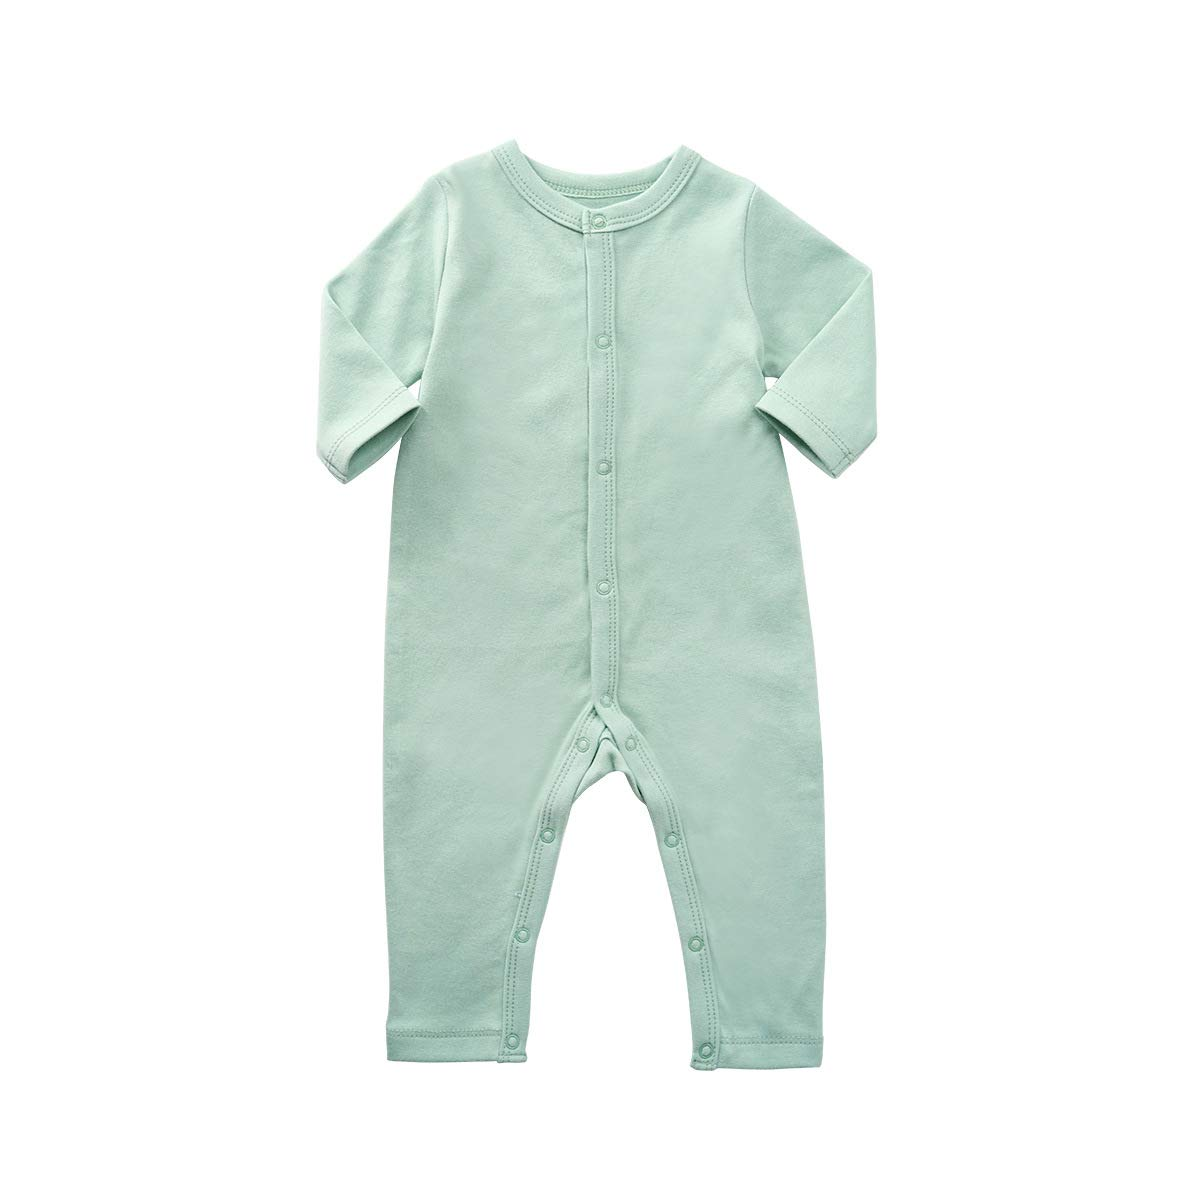 Teach Leanbh Unisex Baby Romper Coton Long Sleeve Button Down Footless Jumpsuit 0-24 Months